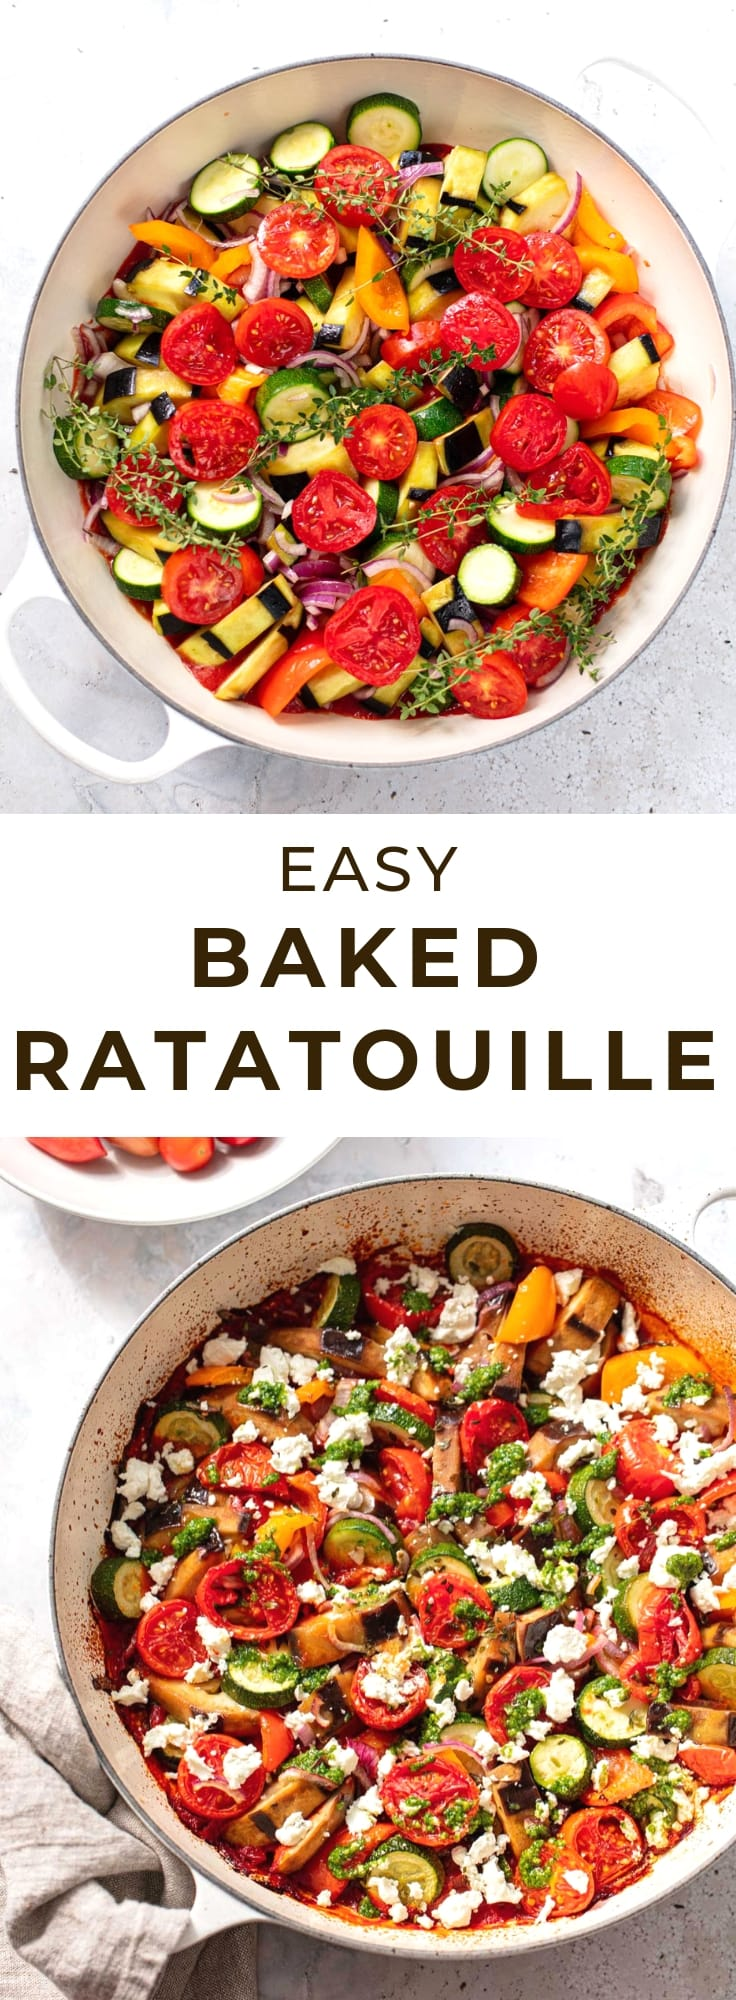 Easy recipe for traditional ratatouille, a FANTASTIC tasty vegetarian/vegan casserole with Mediterranean vegetables and pesto.